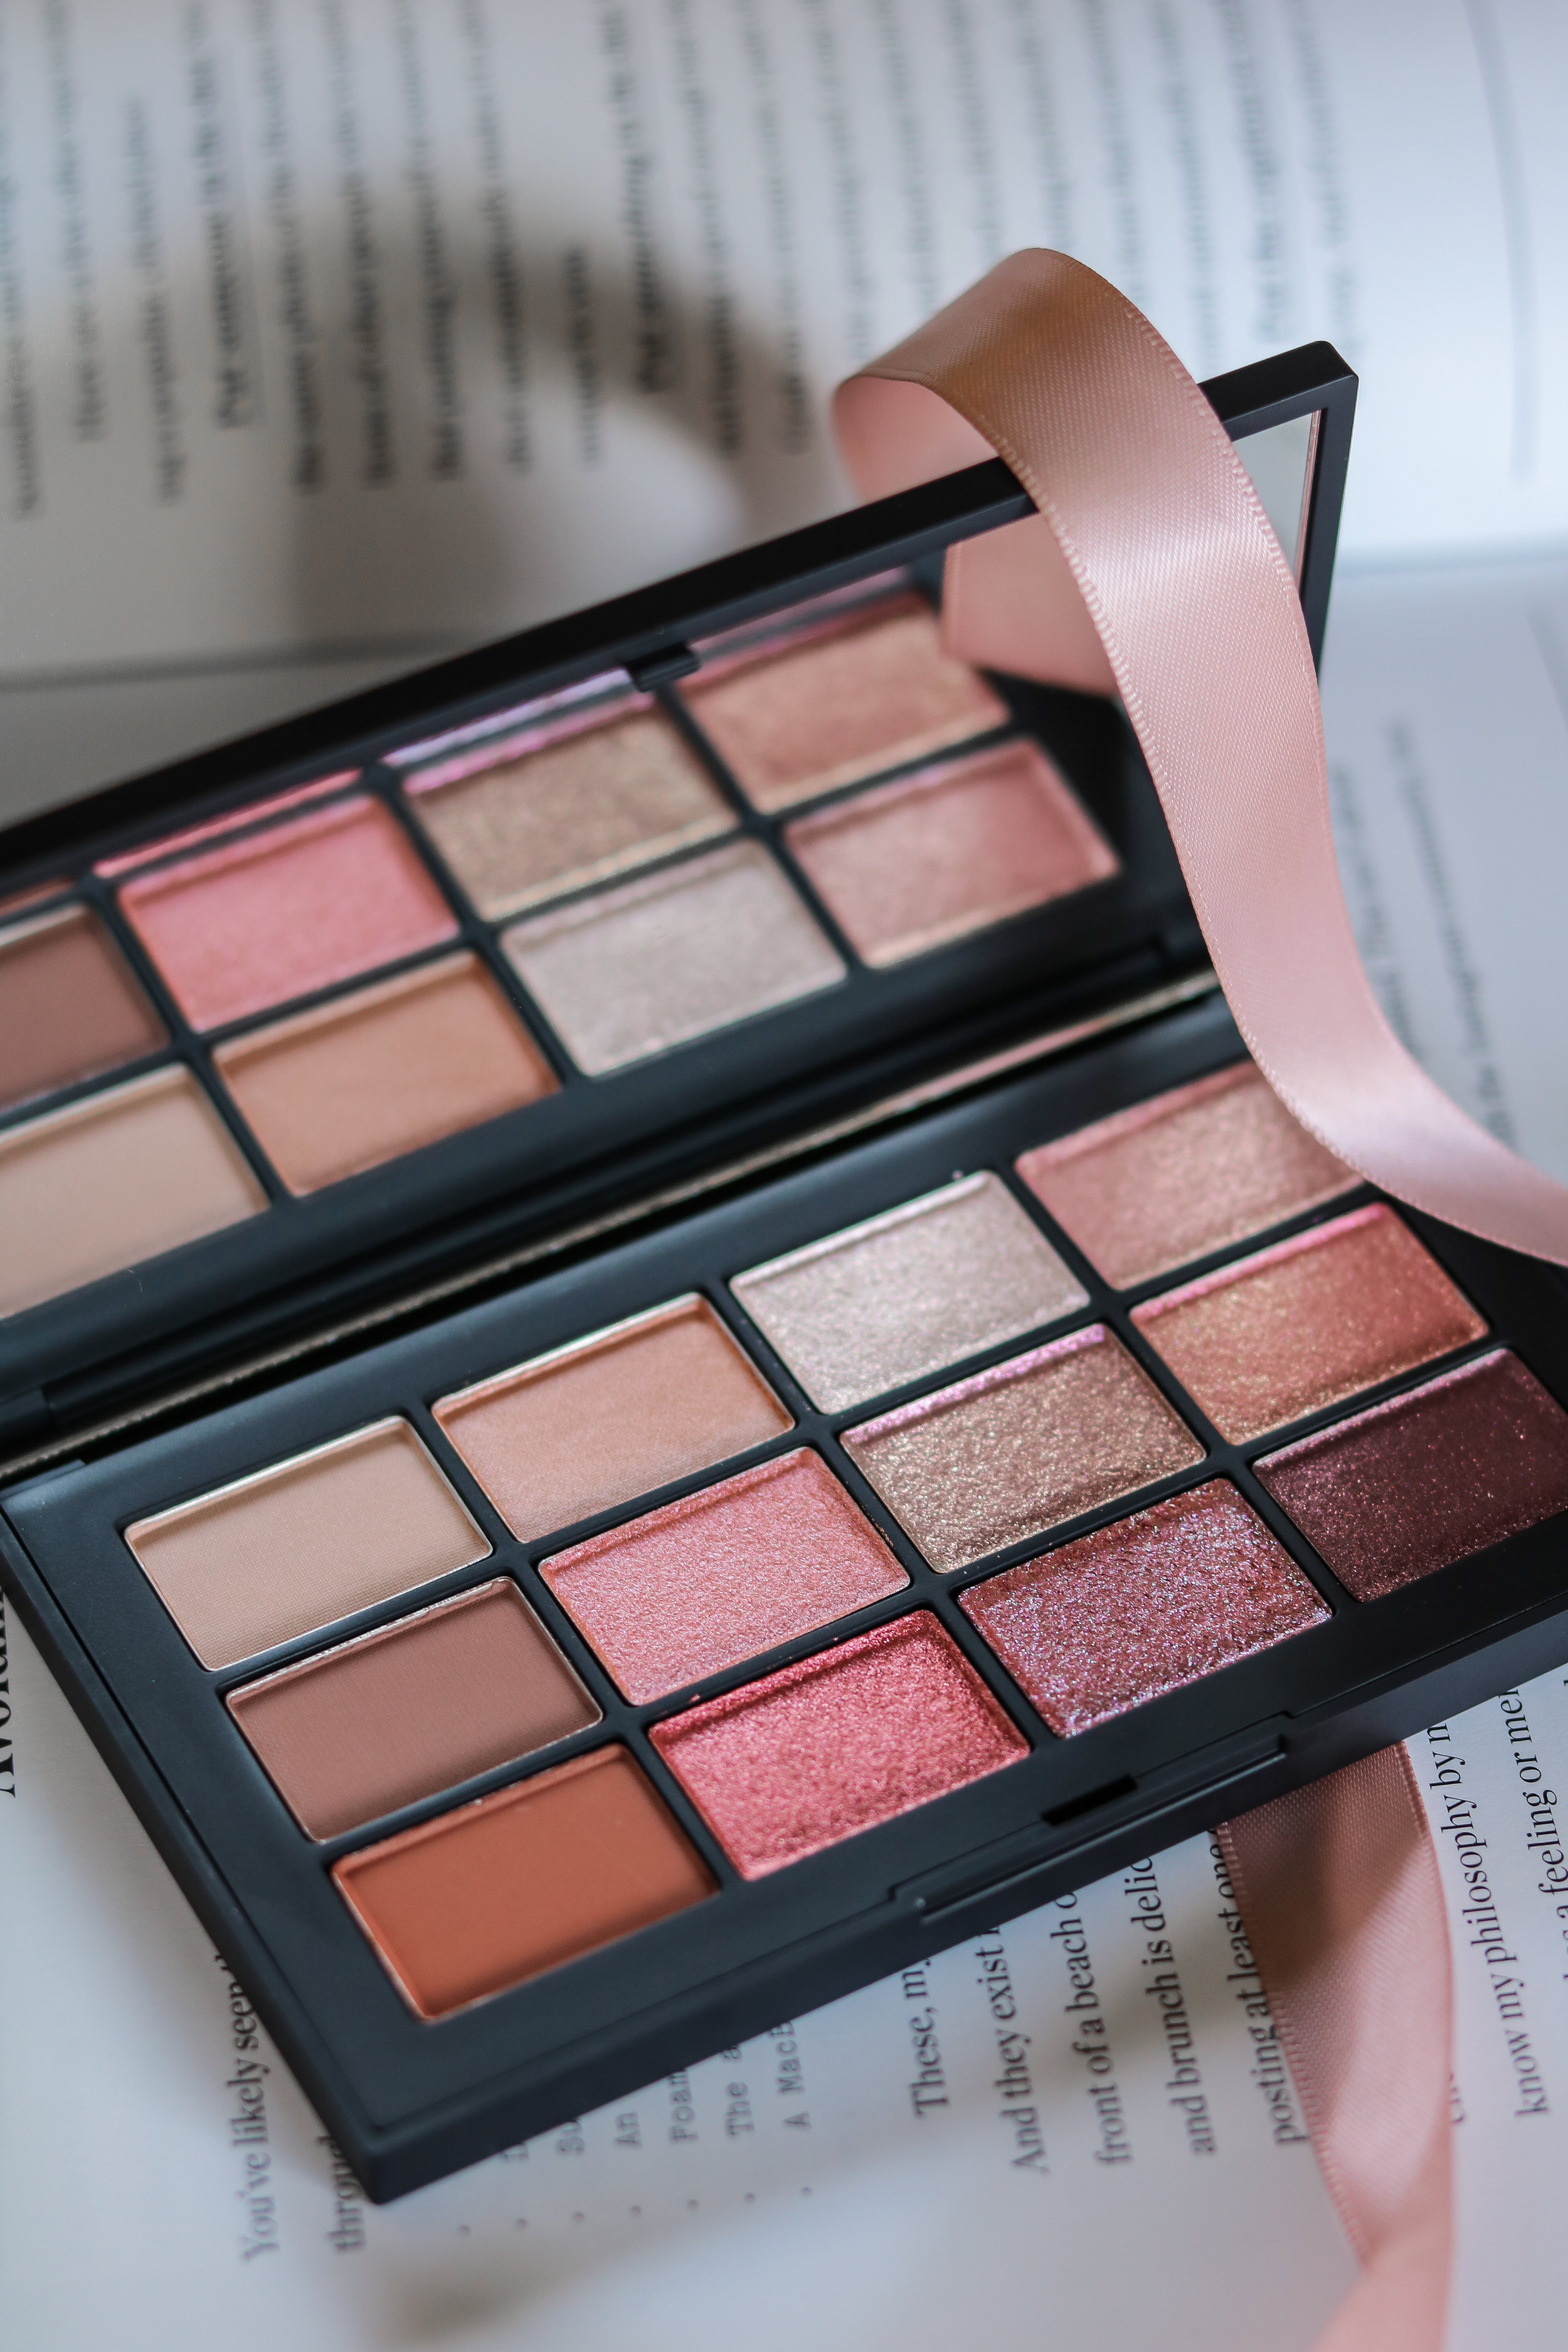 The Hungarian Brunette - Nars Ignited eyeshadow palette review and swatches